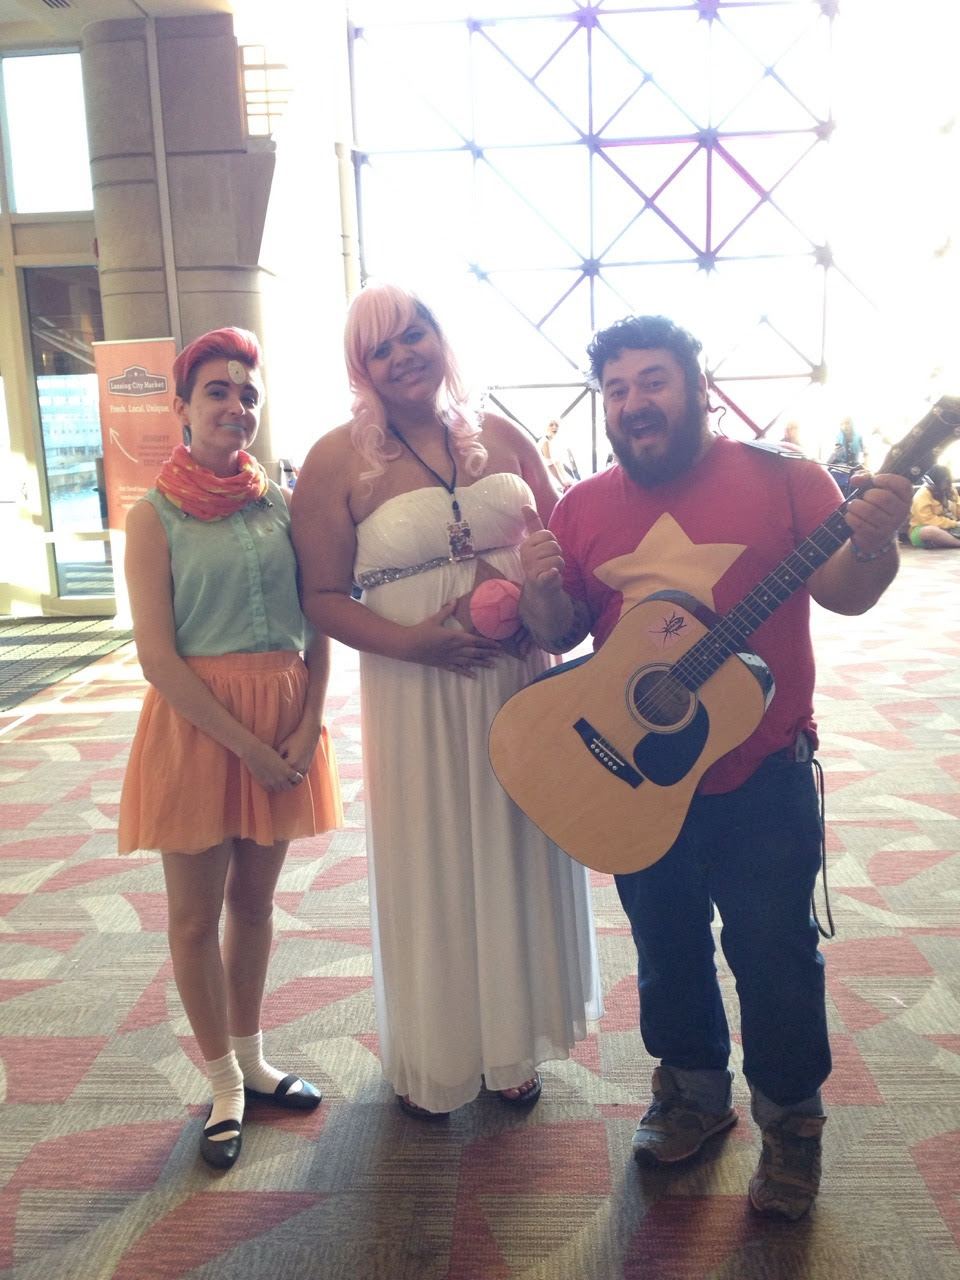 brappzannigan as pearl alchanbenedetto as rose quartz and me as steven. i posed for a ton of pics and would love to see them. if you took any at shutocon please tag me imascientistofmusic. also i use...